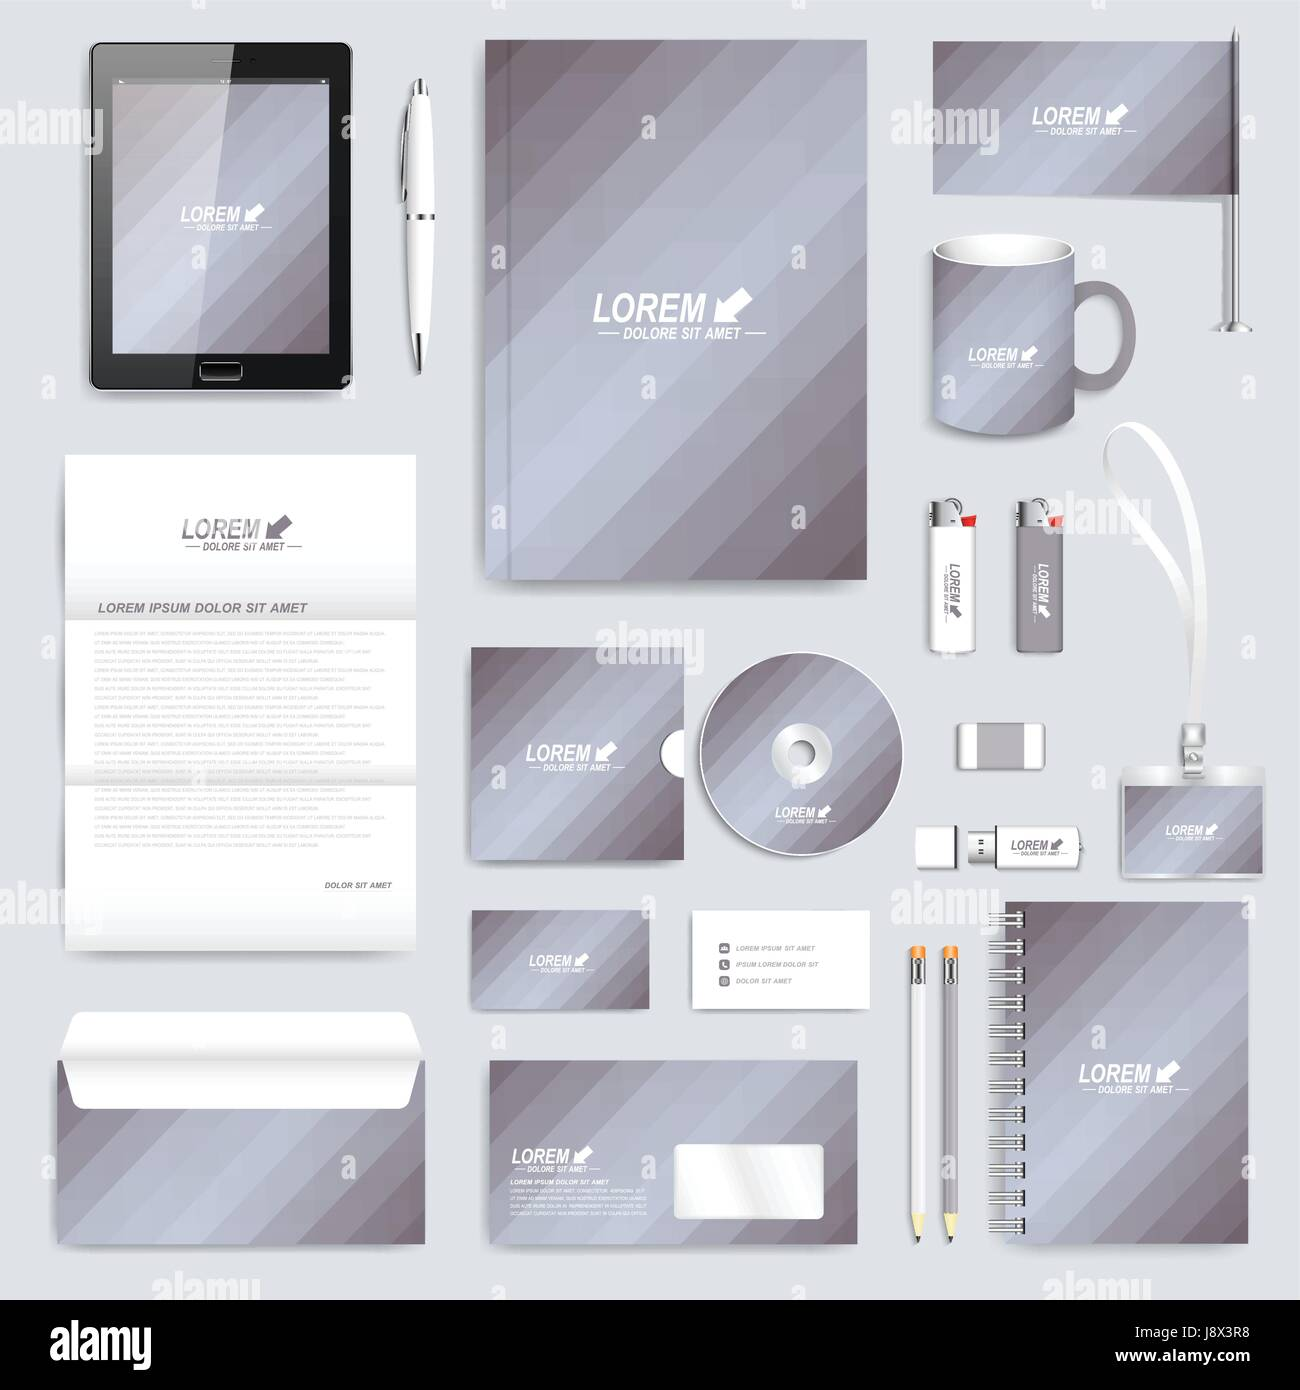 Grey set of vector corporate identity template modern business grey set of vector corporate identity template modern business stationery mock up background with gold triangles branding design cheaphphosting Gallery